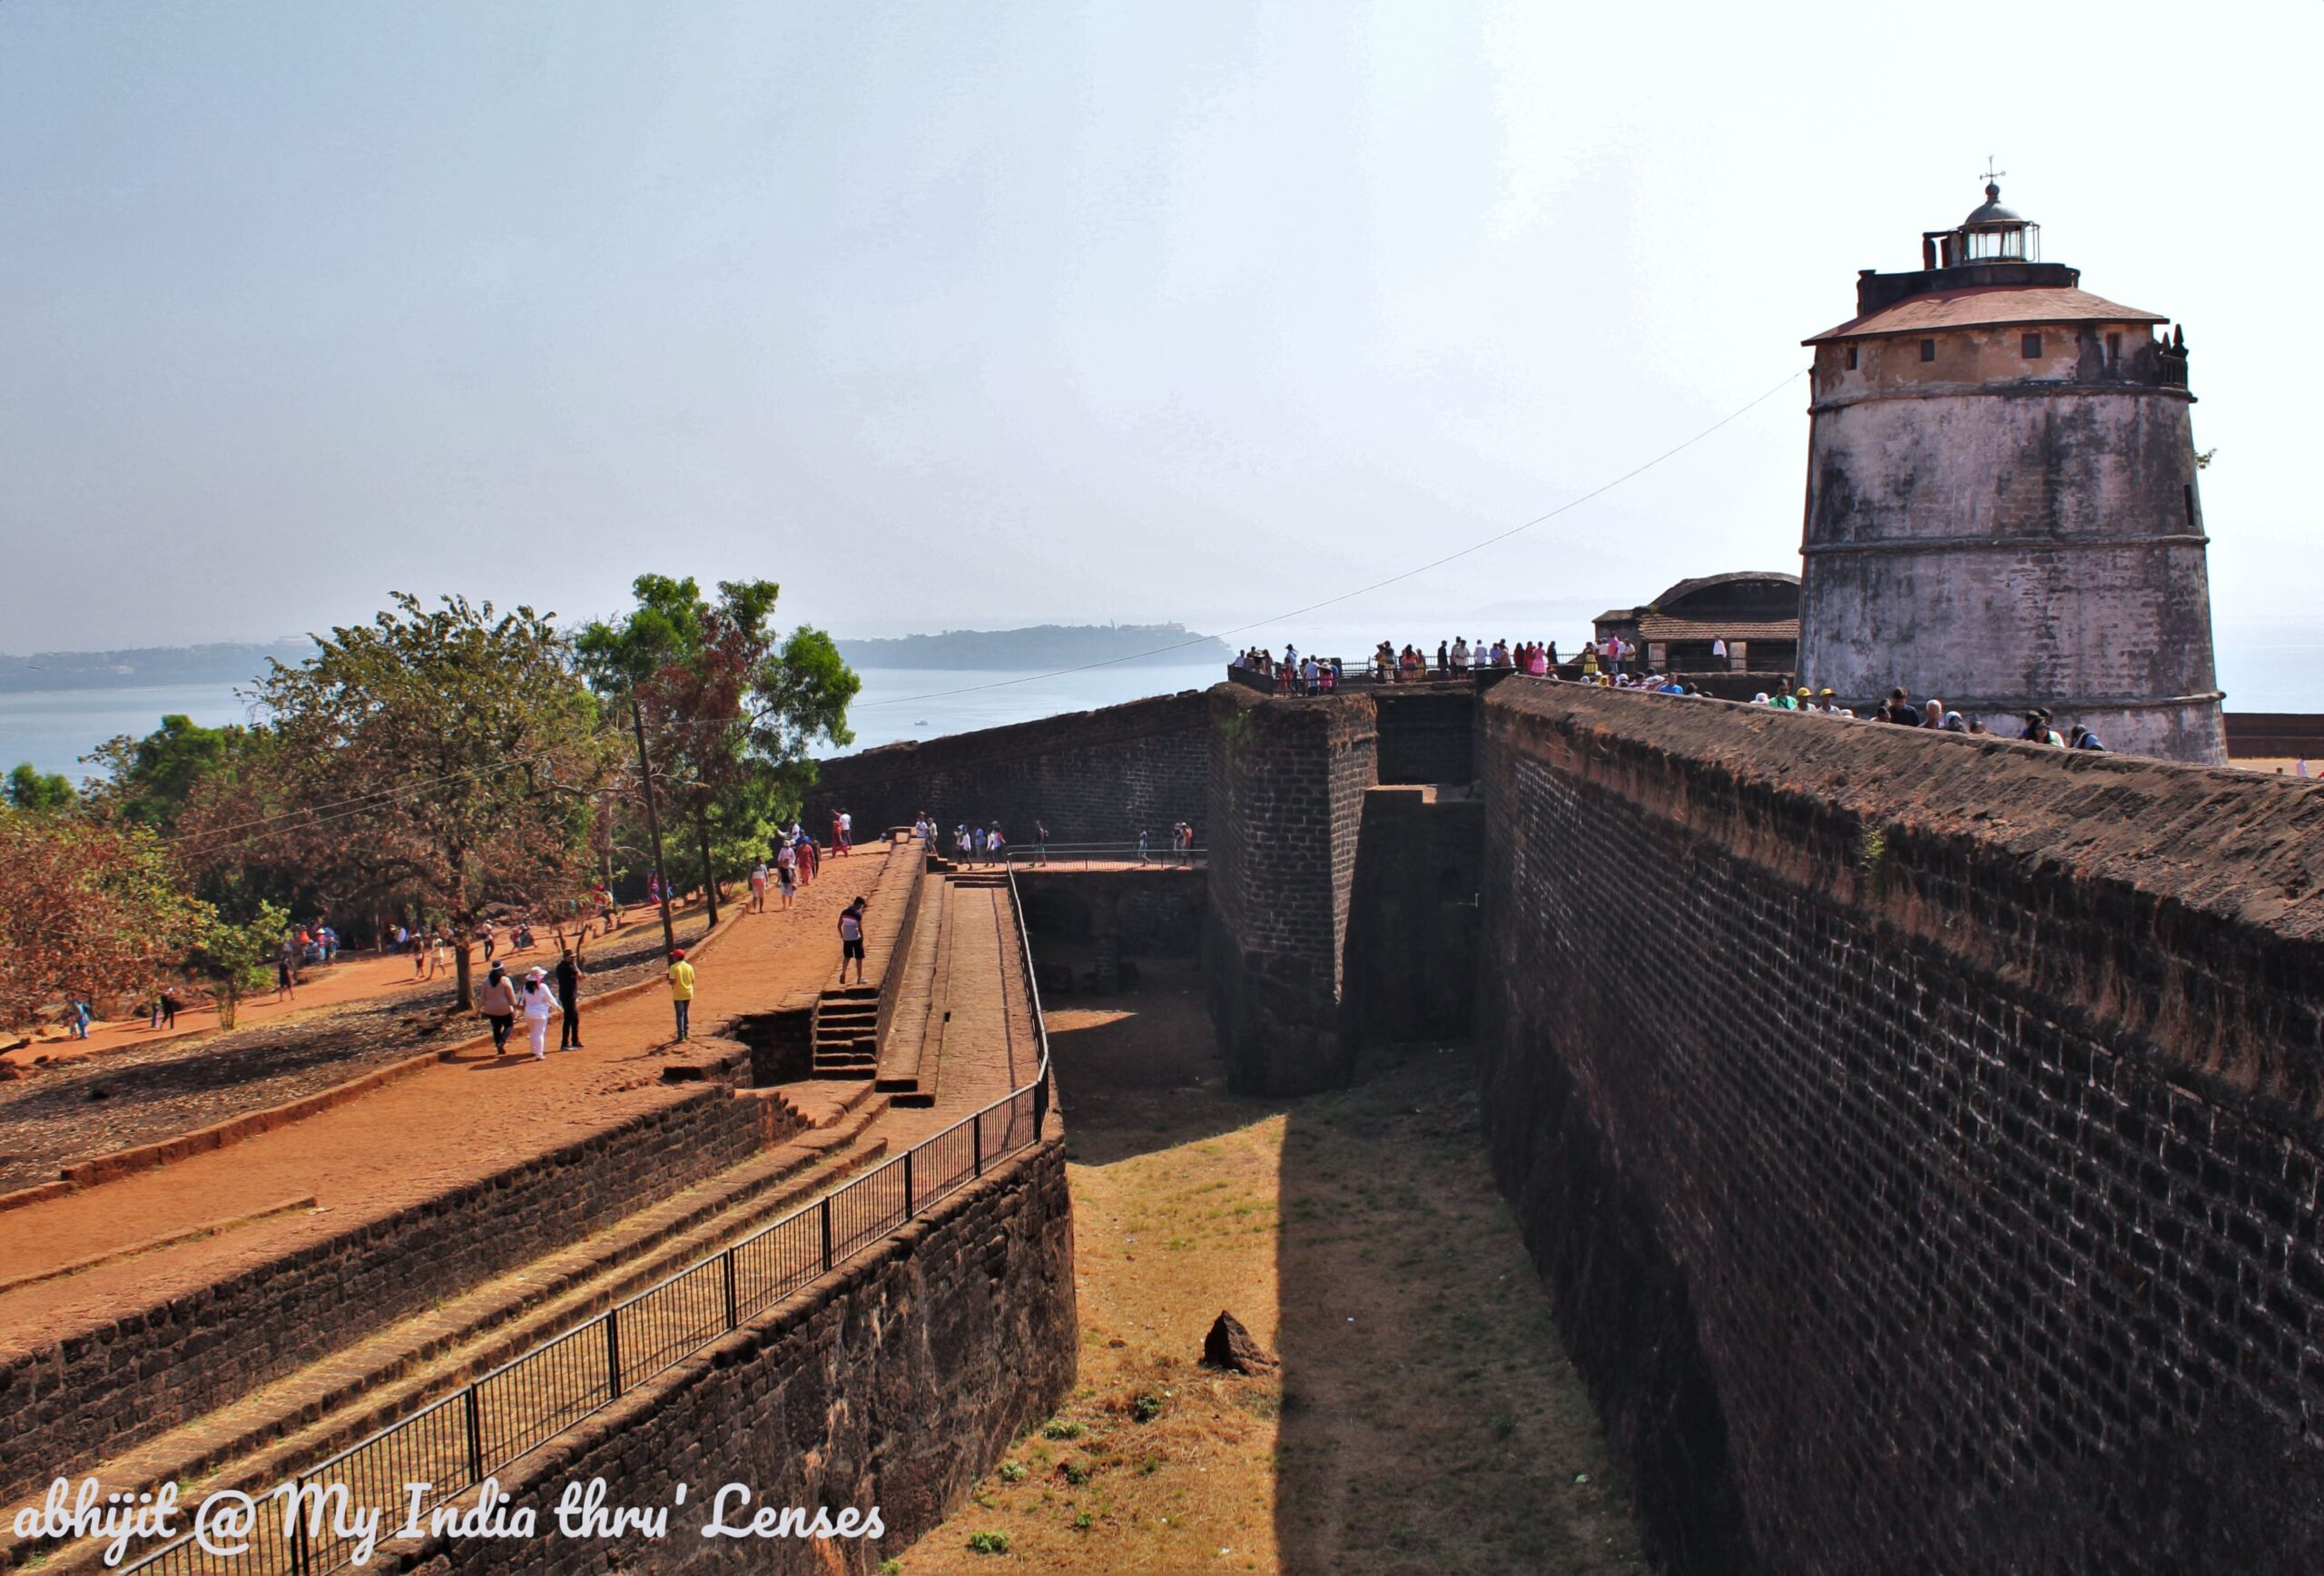 The dry moat at the entrance of the Aguada Fort